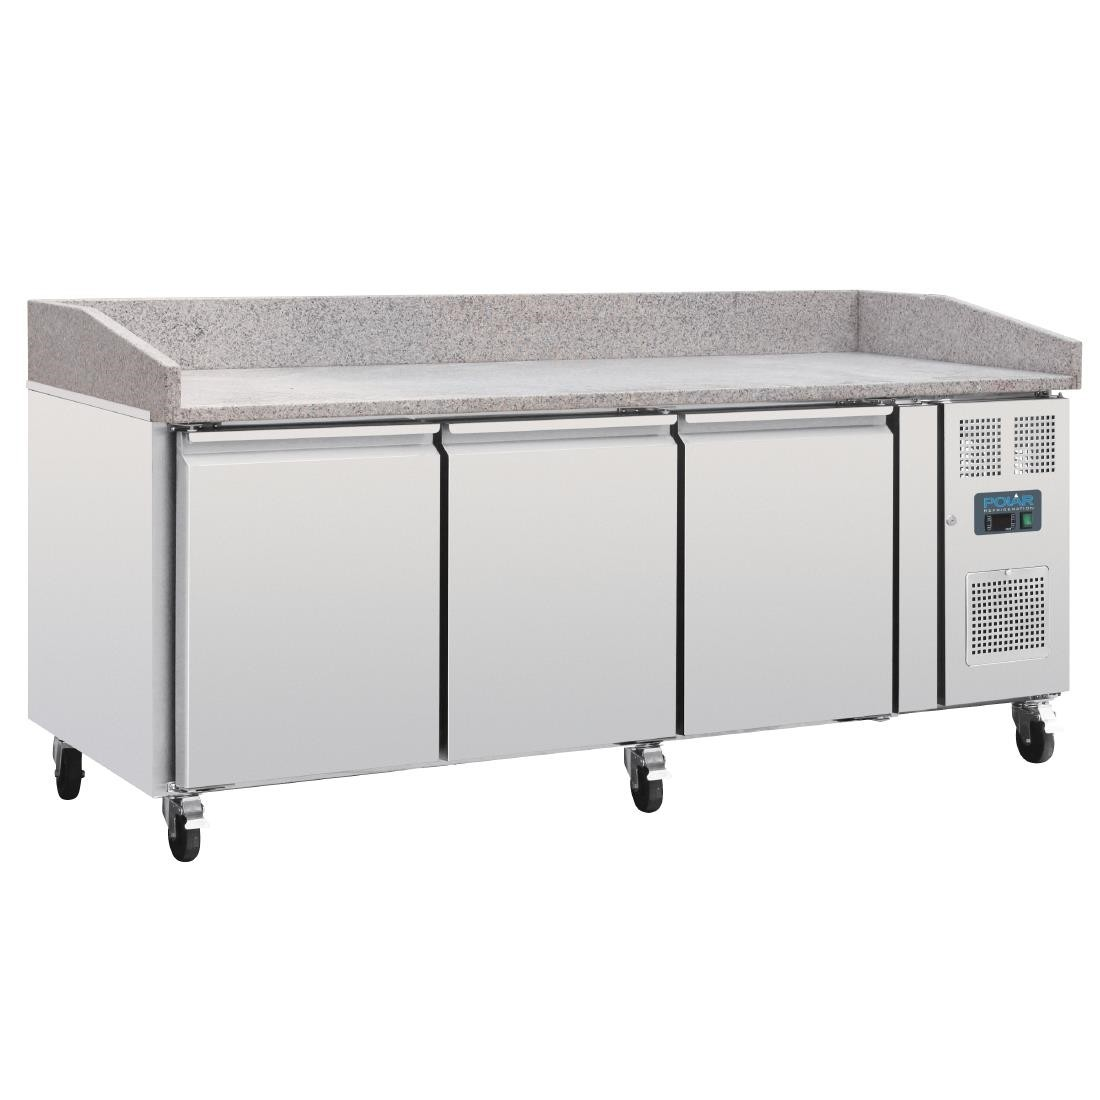 Polar GL182 U-Series Bakery Counter Fridge